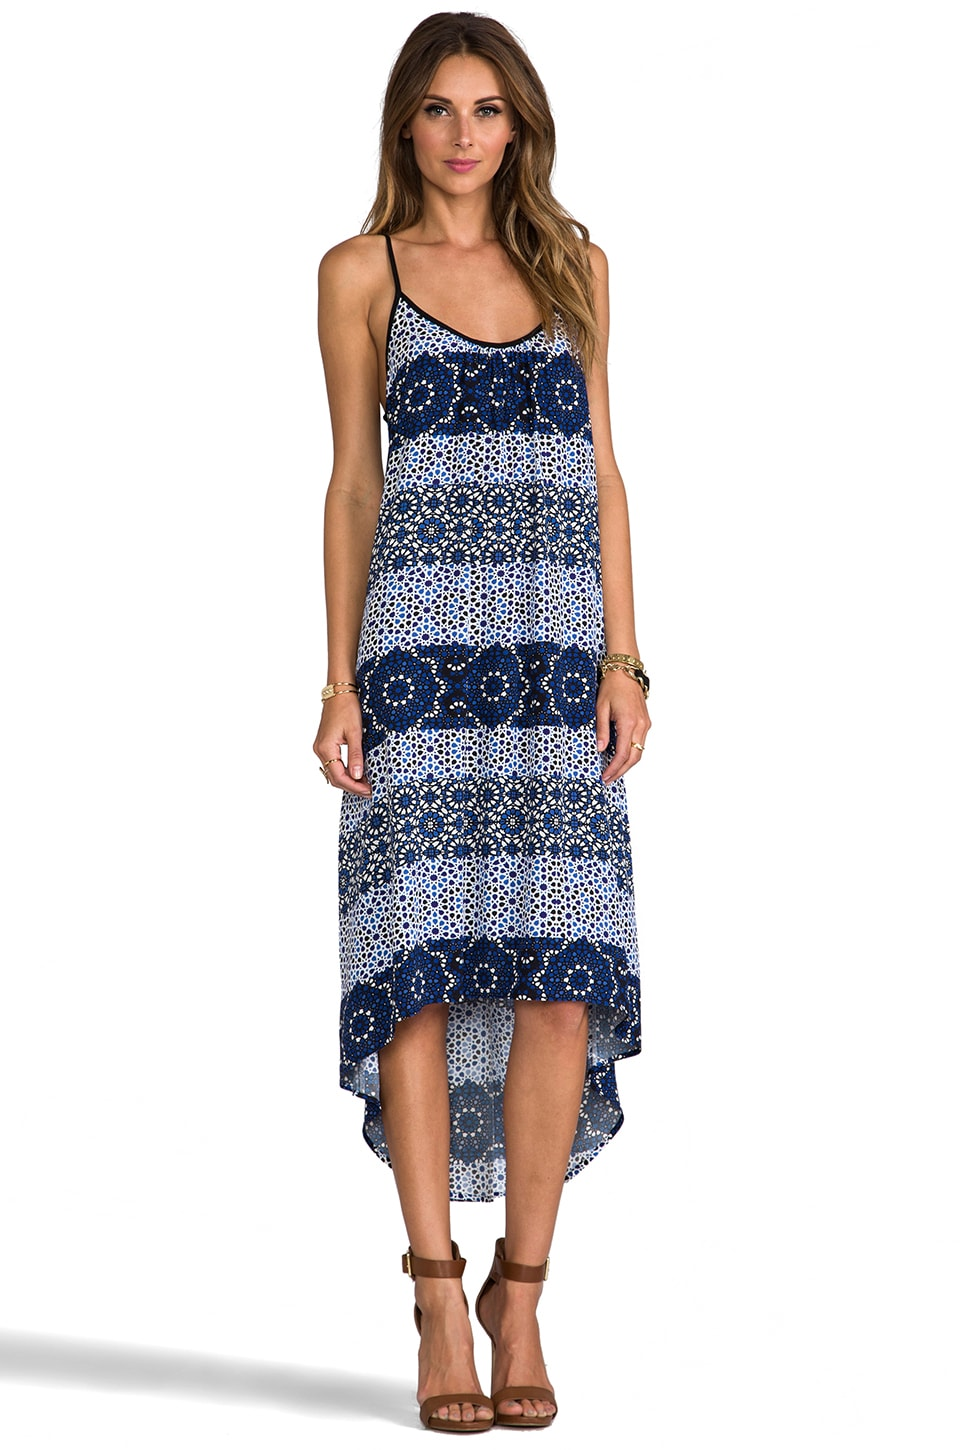 SAM&LAVI Sena Dress in Turkish Tiles